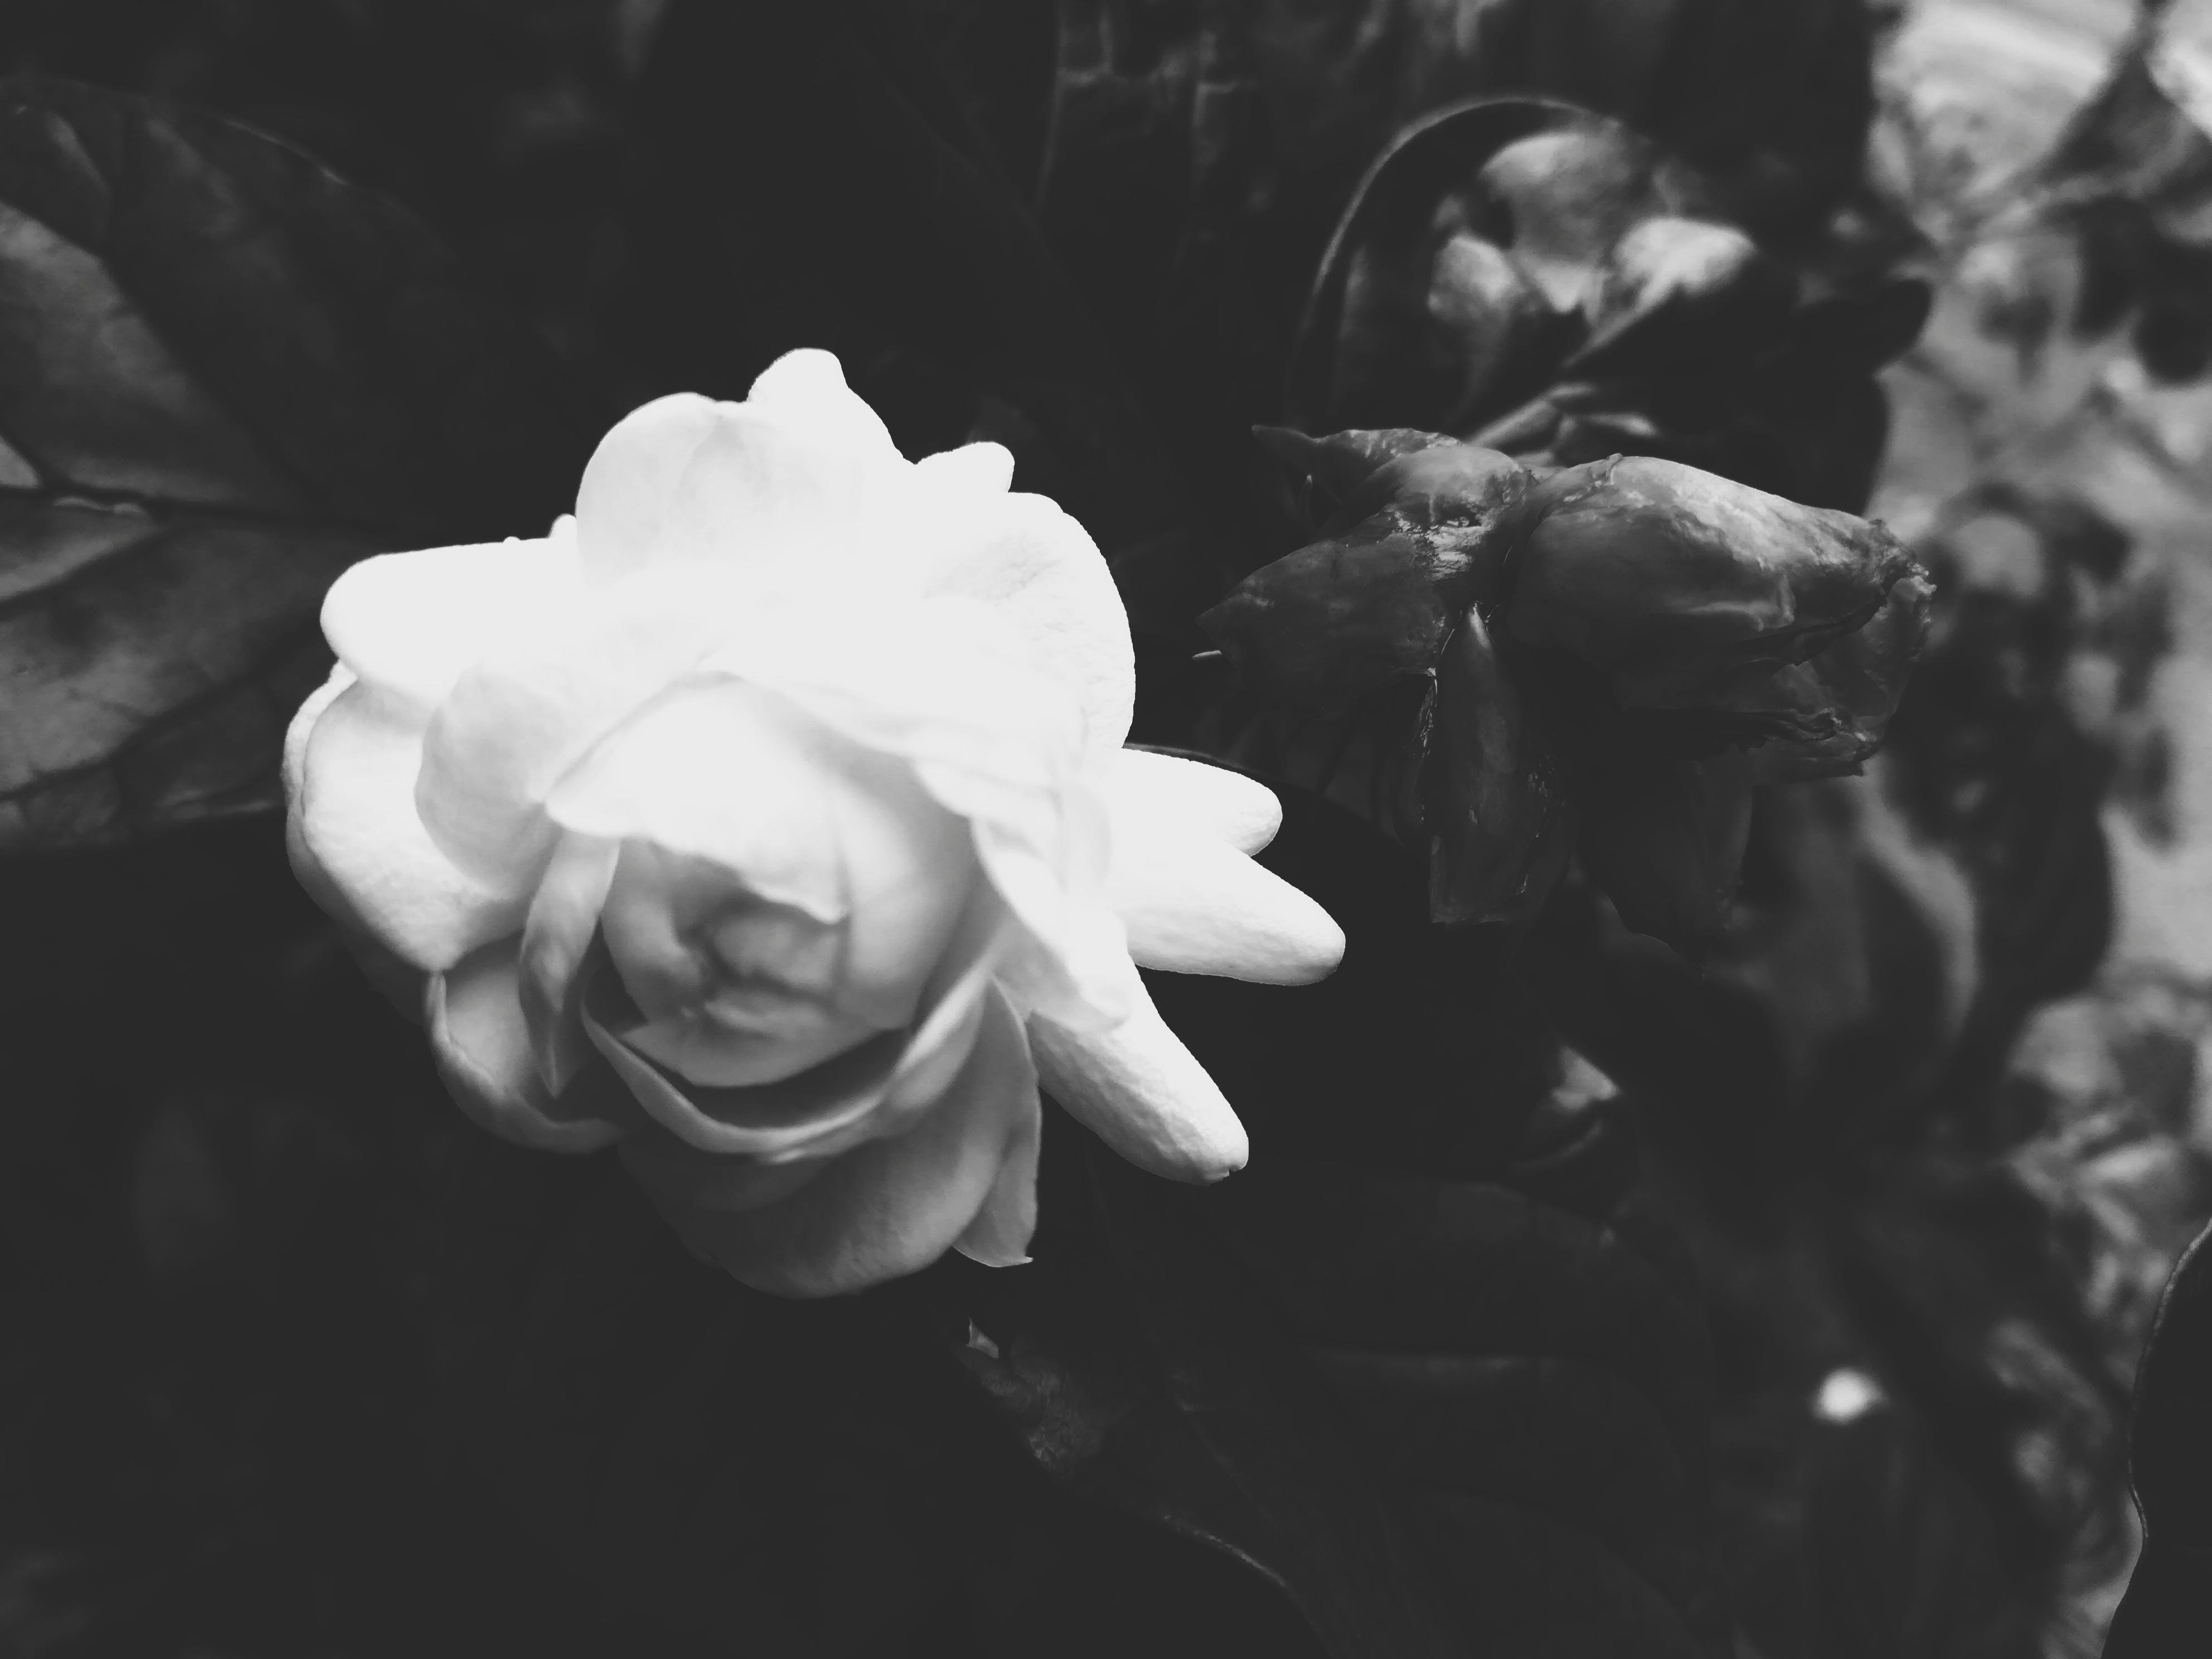 Free stock photo of black and white, bloom, blooming, dried petals